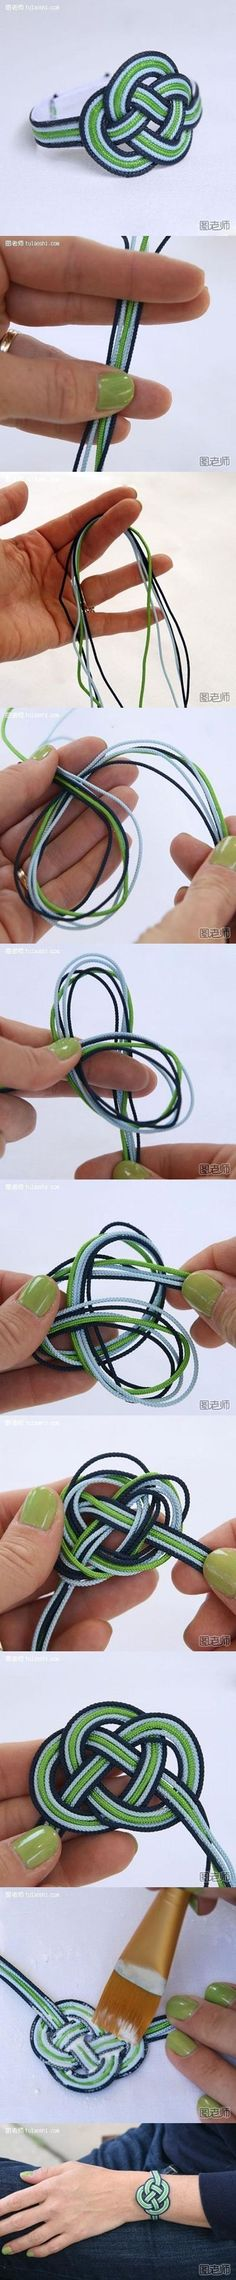 How to make love bracelet step by step DIY instructions / How To Instructions